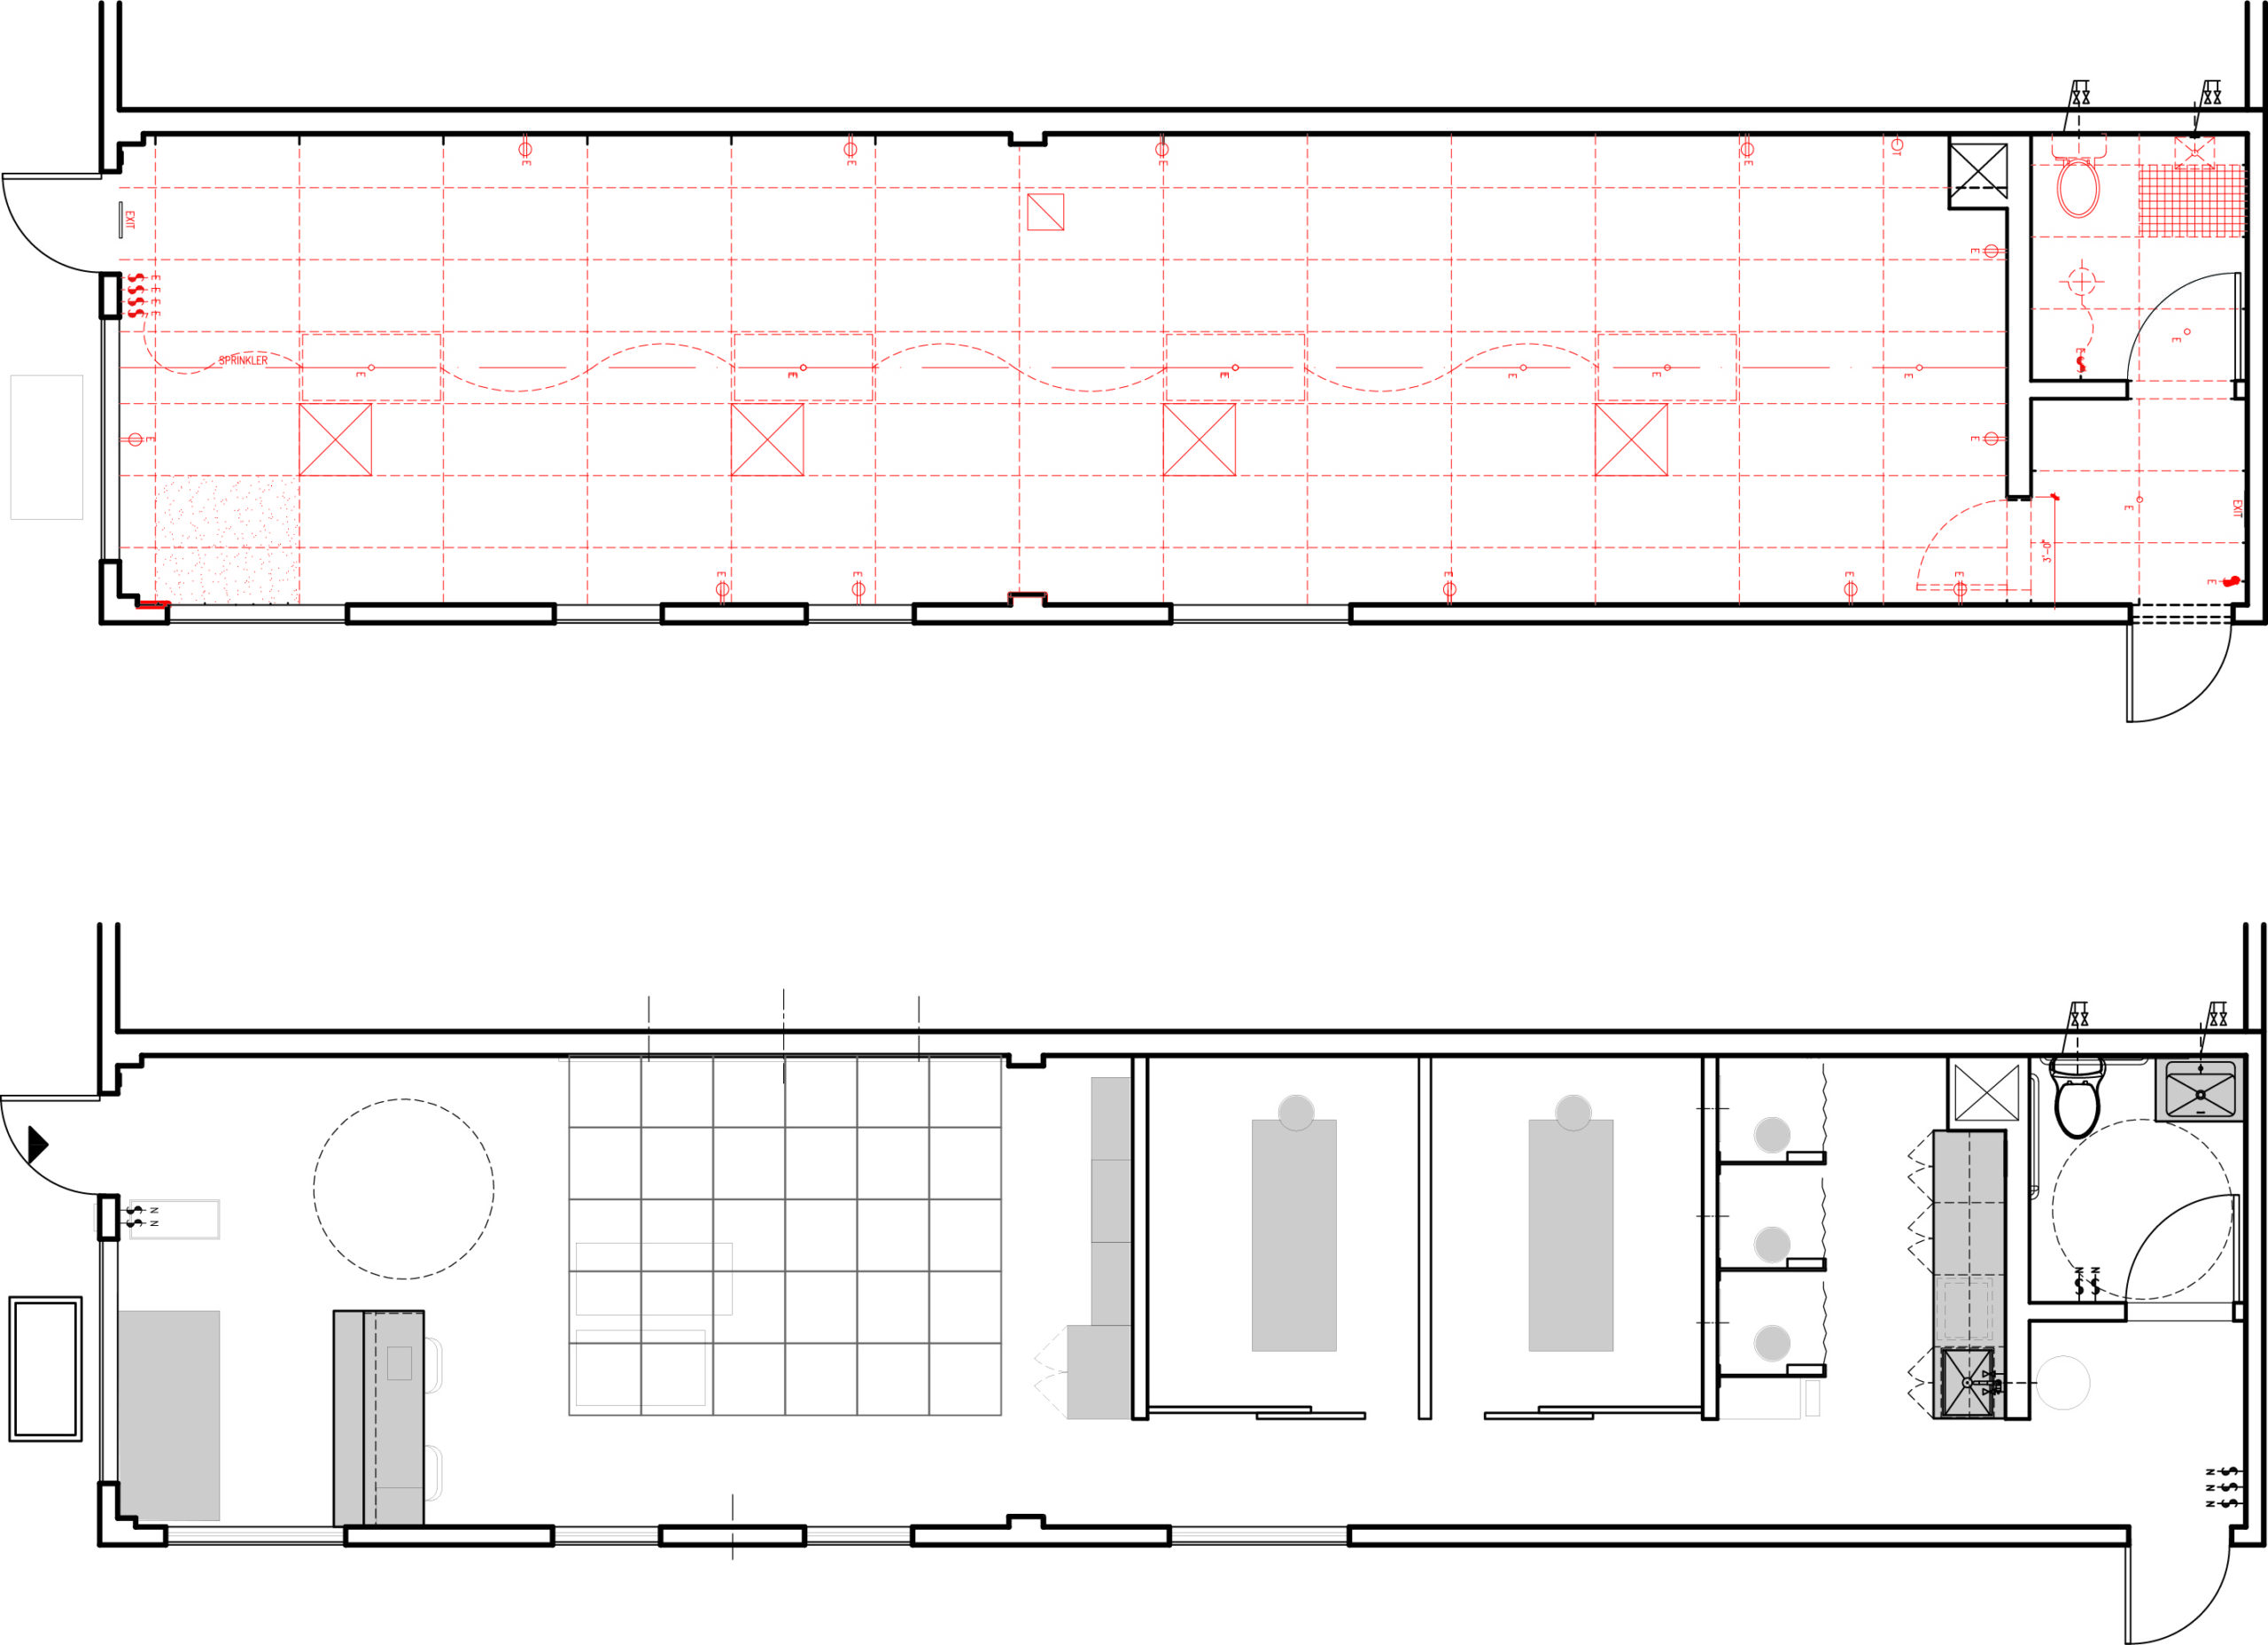 Proposed commercial renovation to create therapy space, NYC